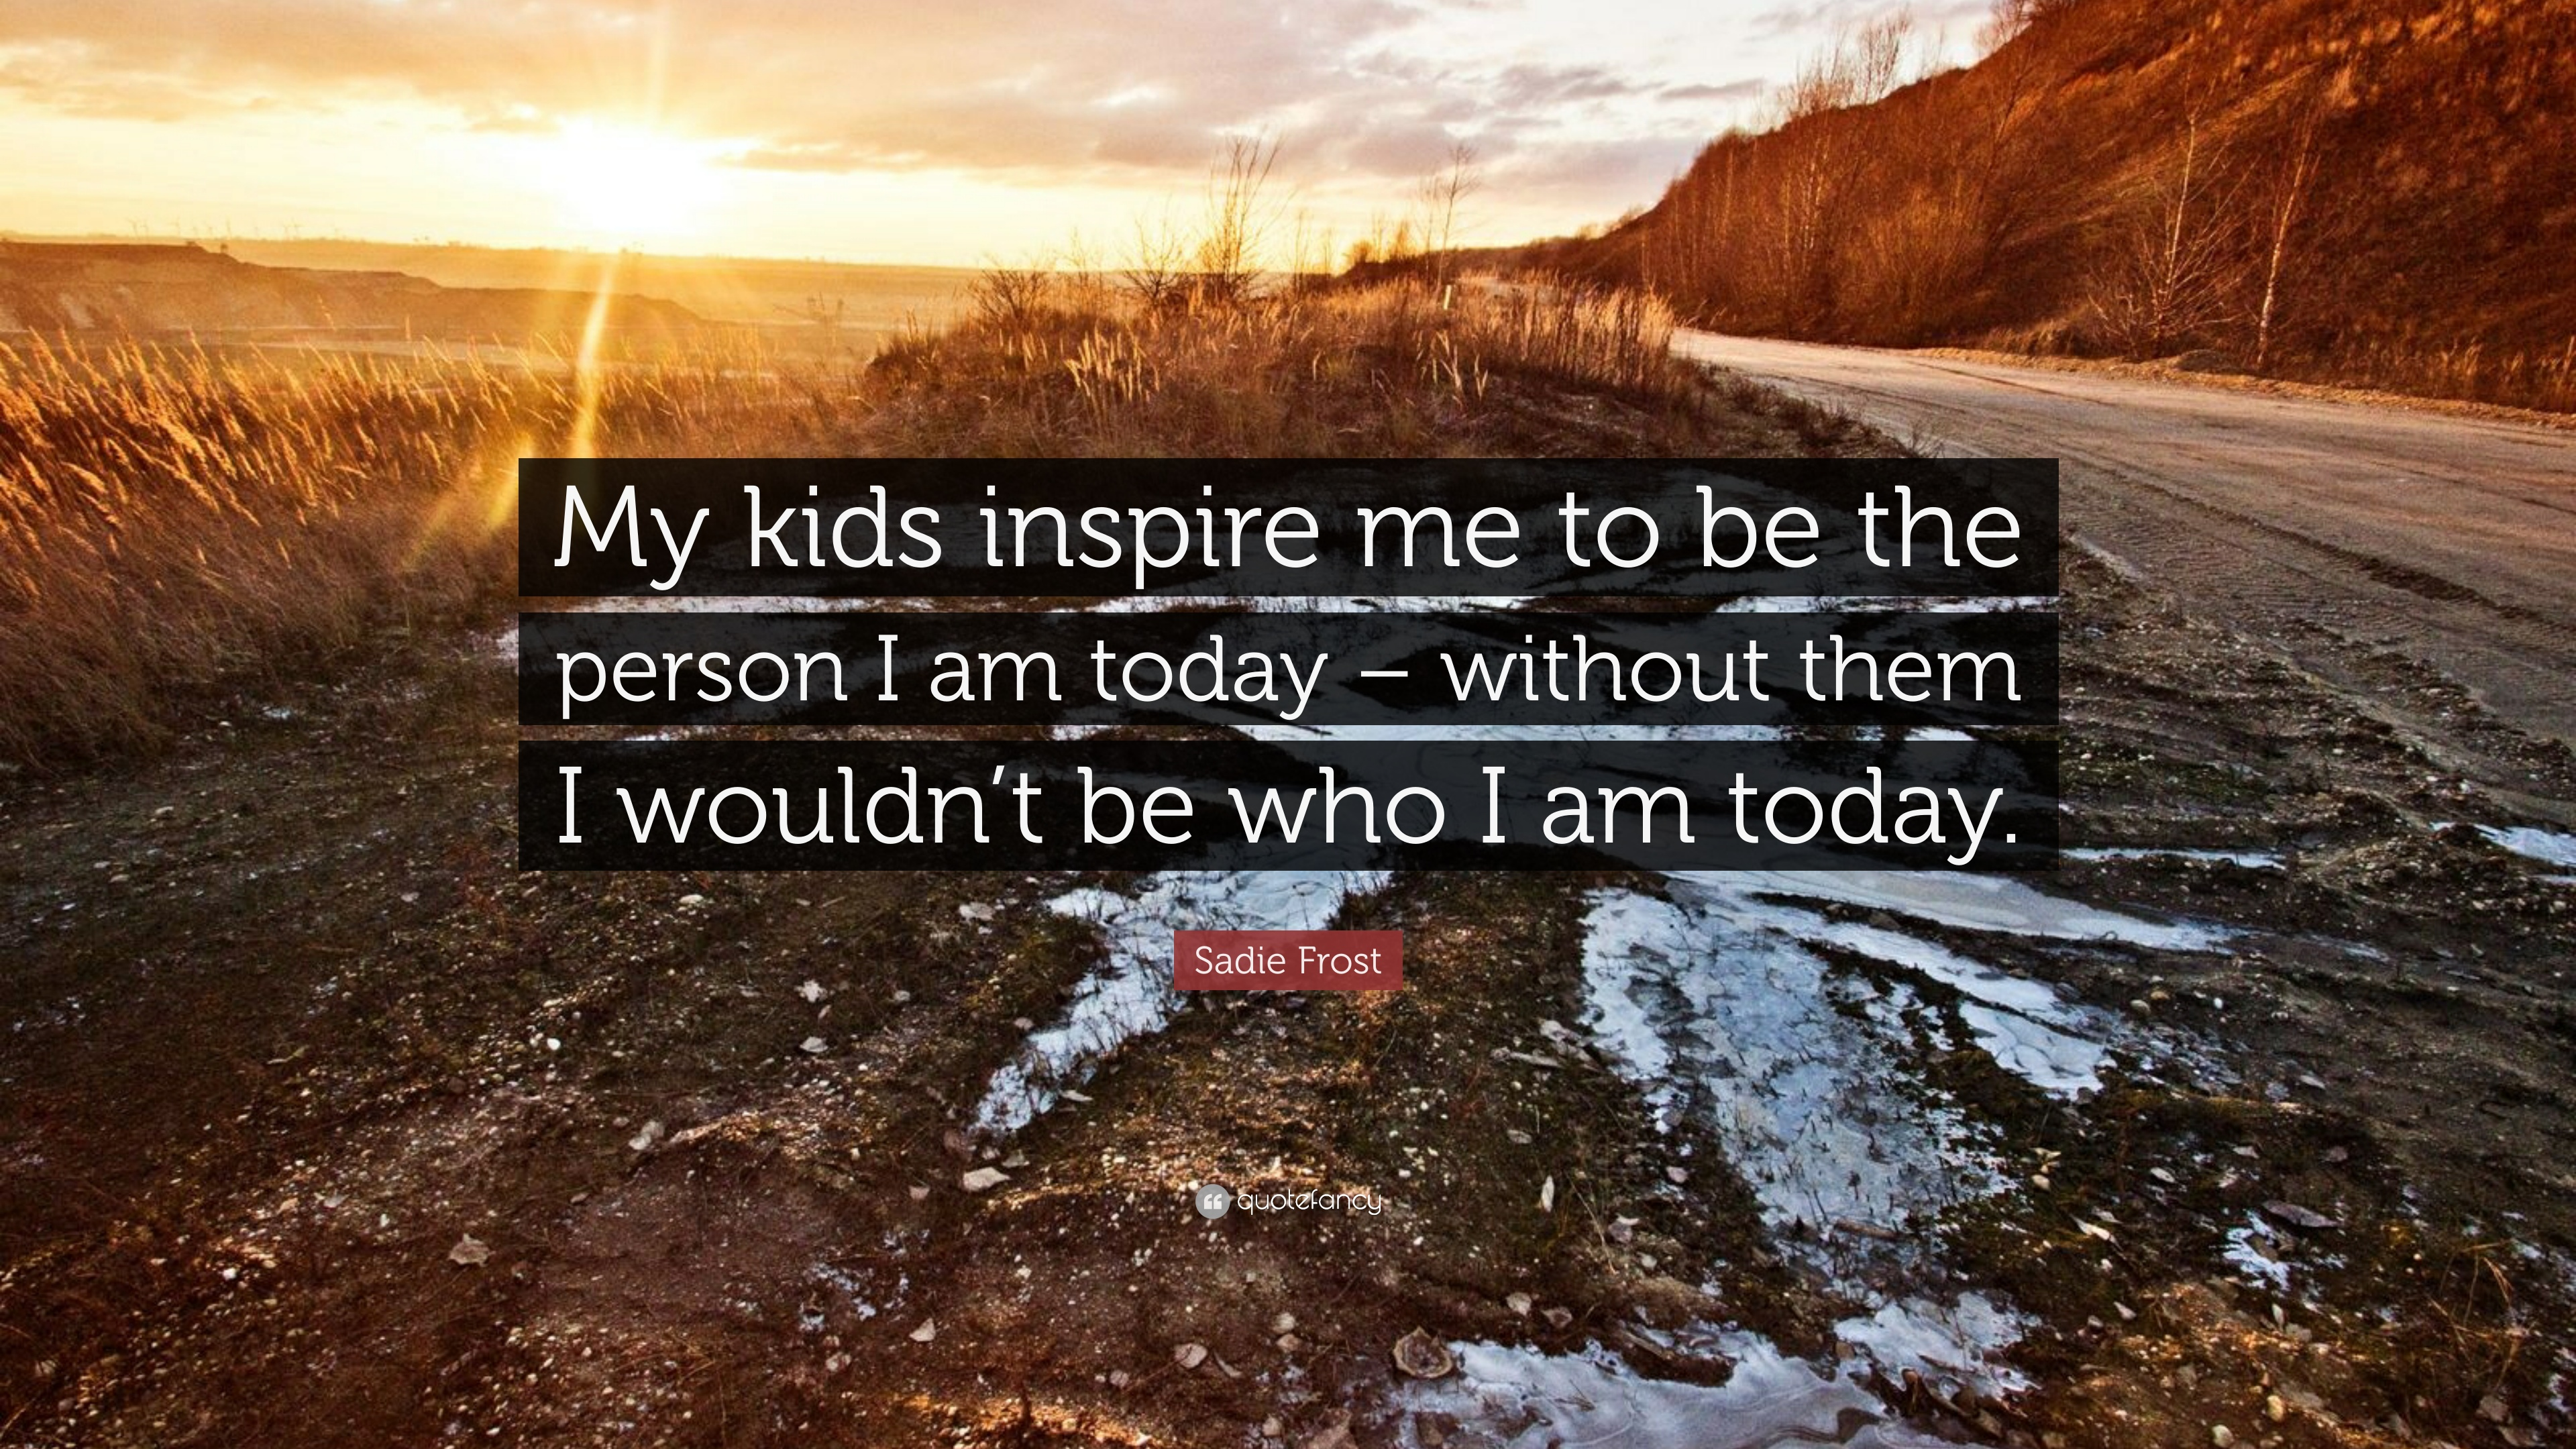 Sadie Frost Quote: U201cMy Kids Inspire Me To Be The Person I Am Today